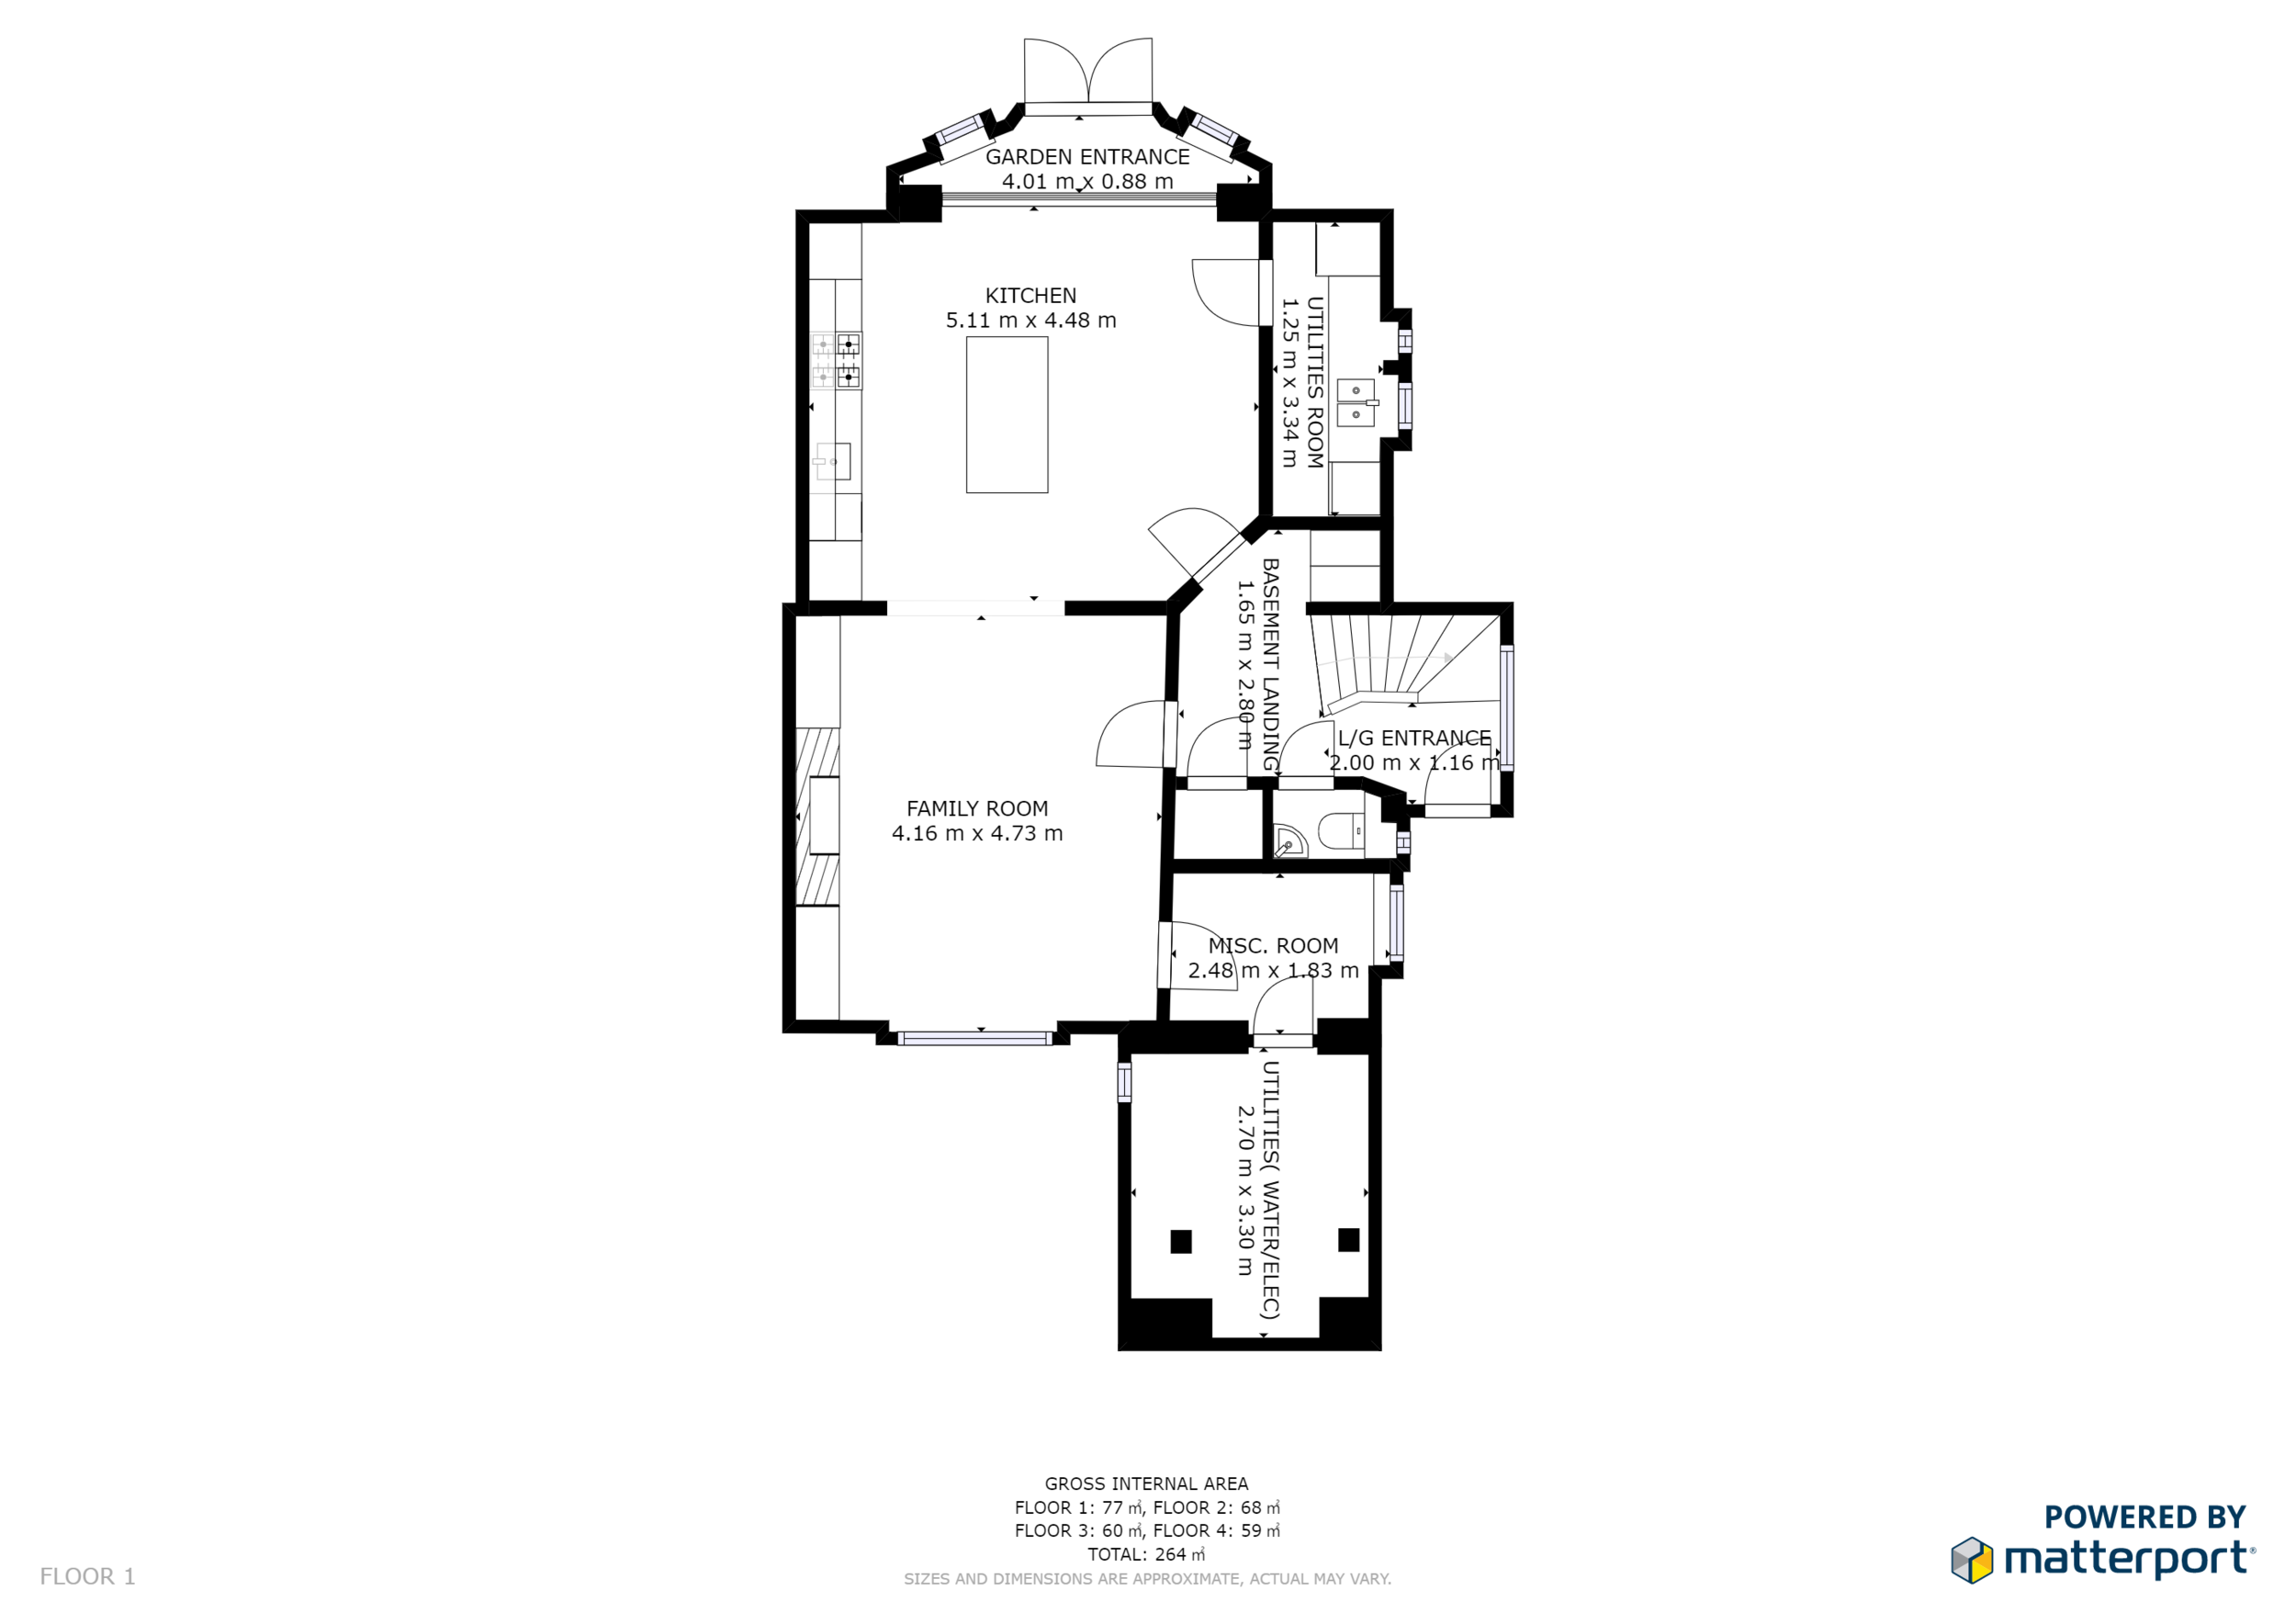 Floor plans. - Schematic floor plans are available for a one time low cost fee, created from the scan data.